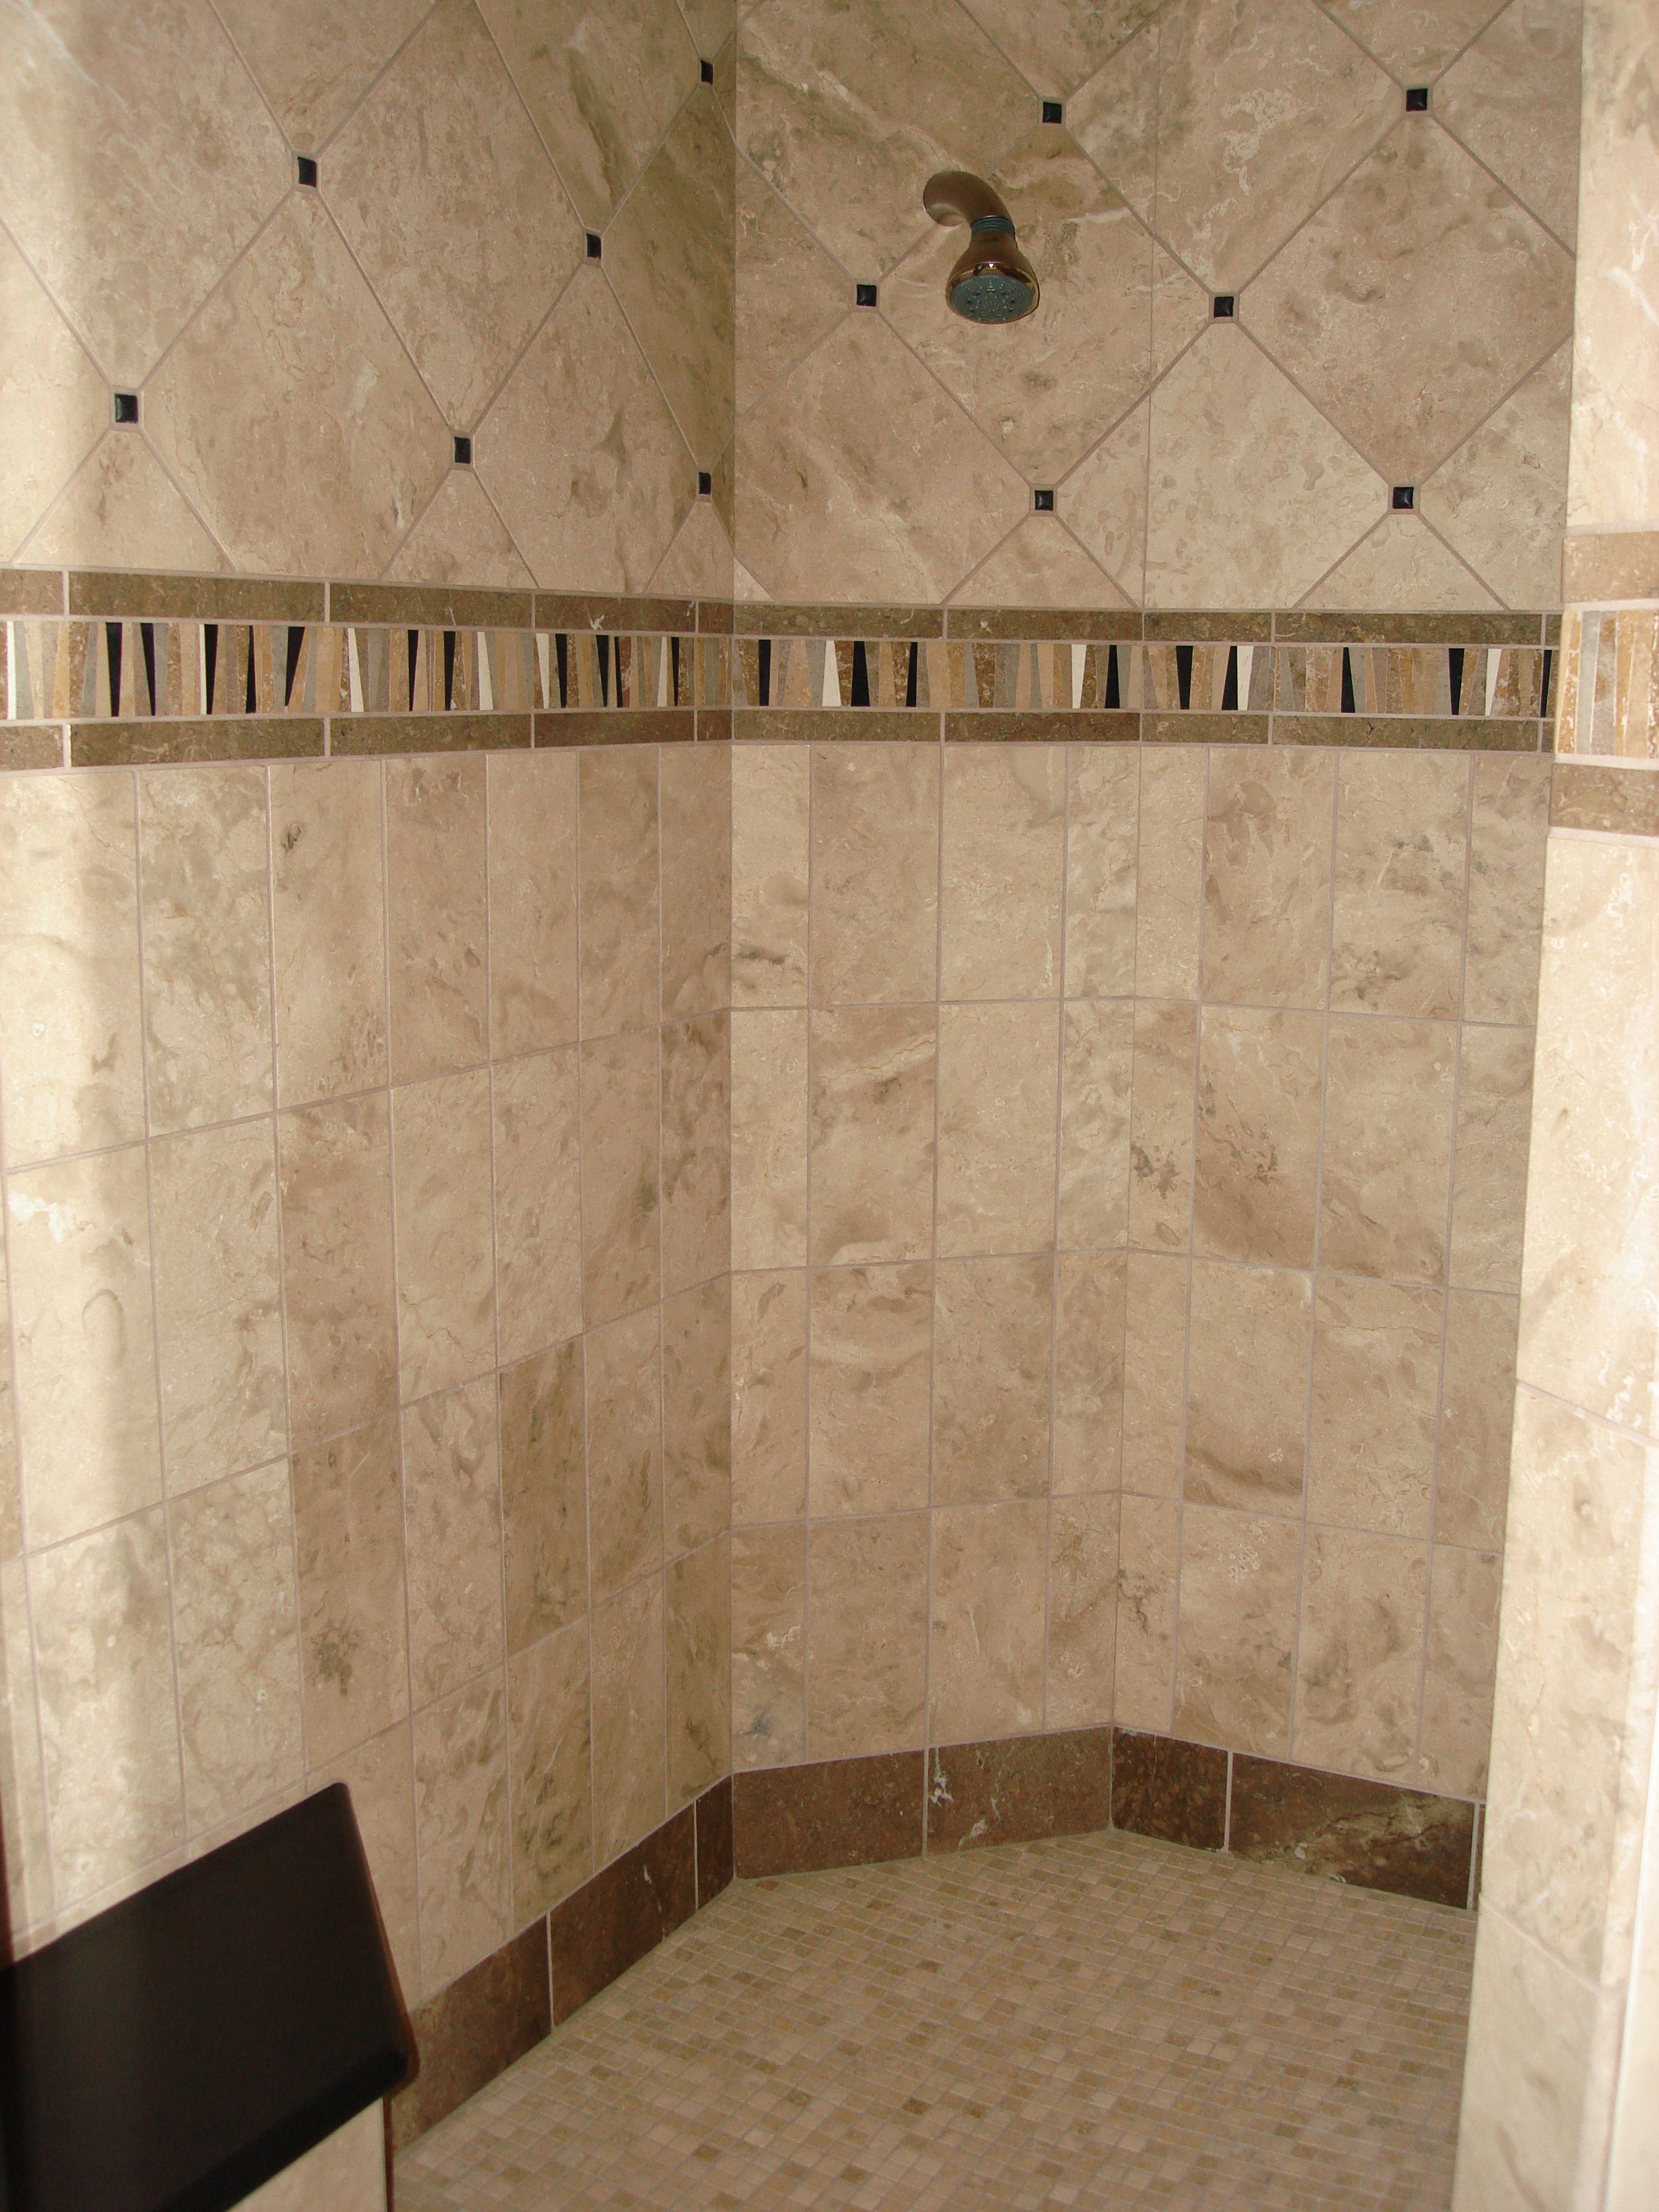 1000 images about shower tile ideas on pinterestshower tiles - Walk In Shower Tile Design Ideas